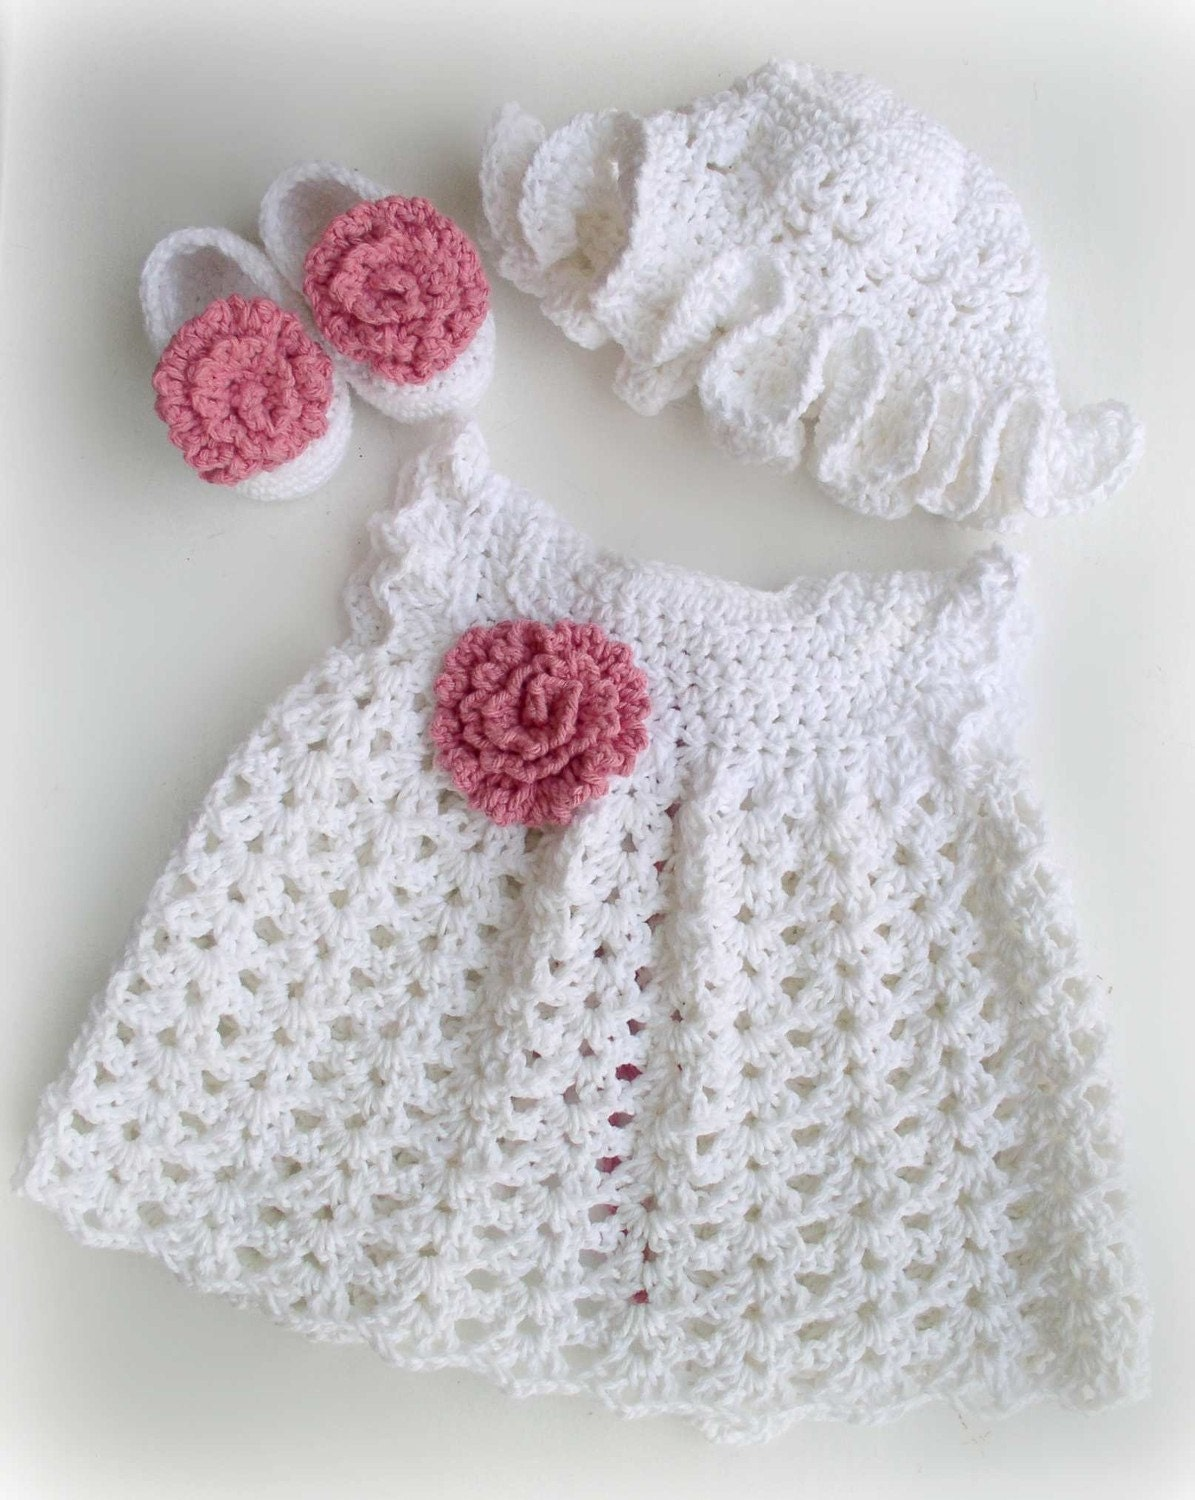 – Newborn Baby – Baby Shower – First Birthday – Gift Sets Our beautiful range of baby girl dresses are all made from organic cotton; they are soft, comfy and easy to move around in. From classic pinks to modern greys, they all make stylish baby girl outfits.